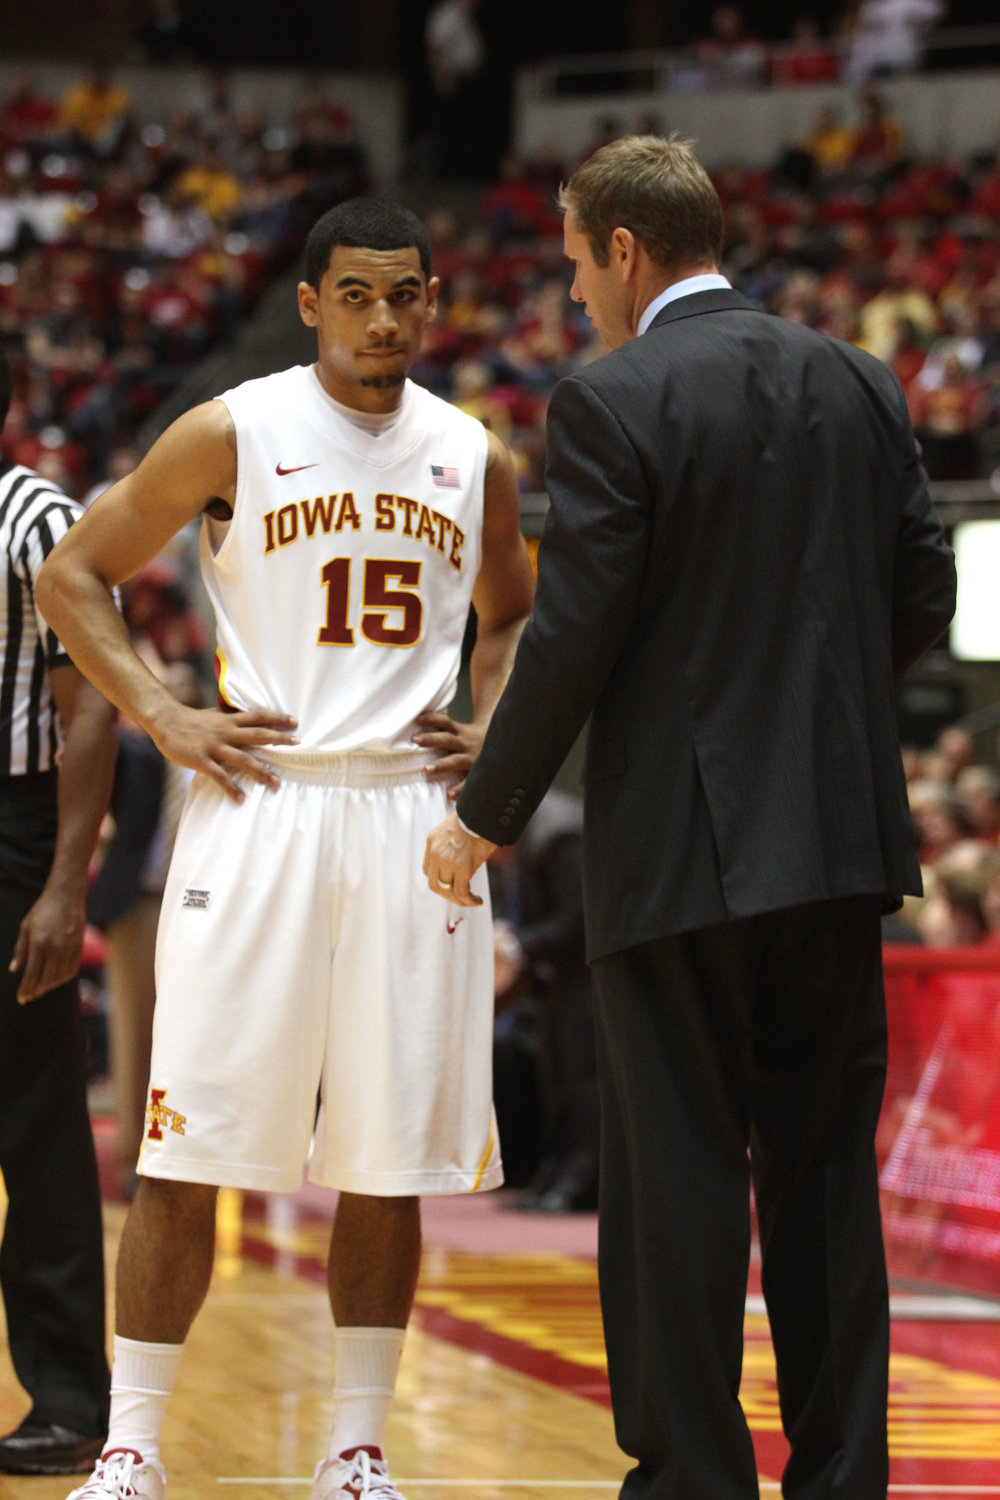 Naz Mitrou-Long talks with Iowa State coach Fred Hoiberg during his freshman season. Photo by William Deaton/Iowa State Daily